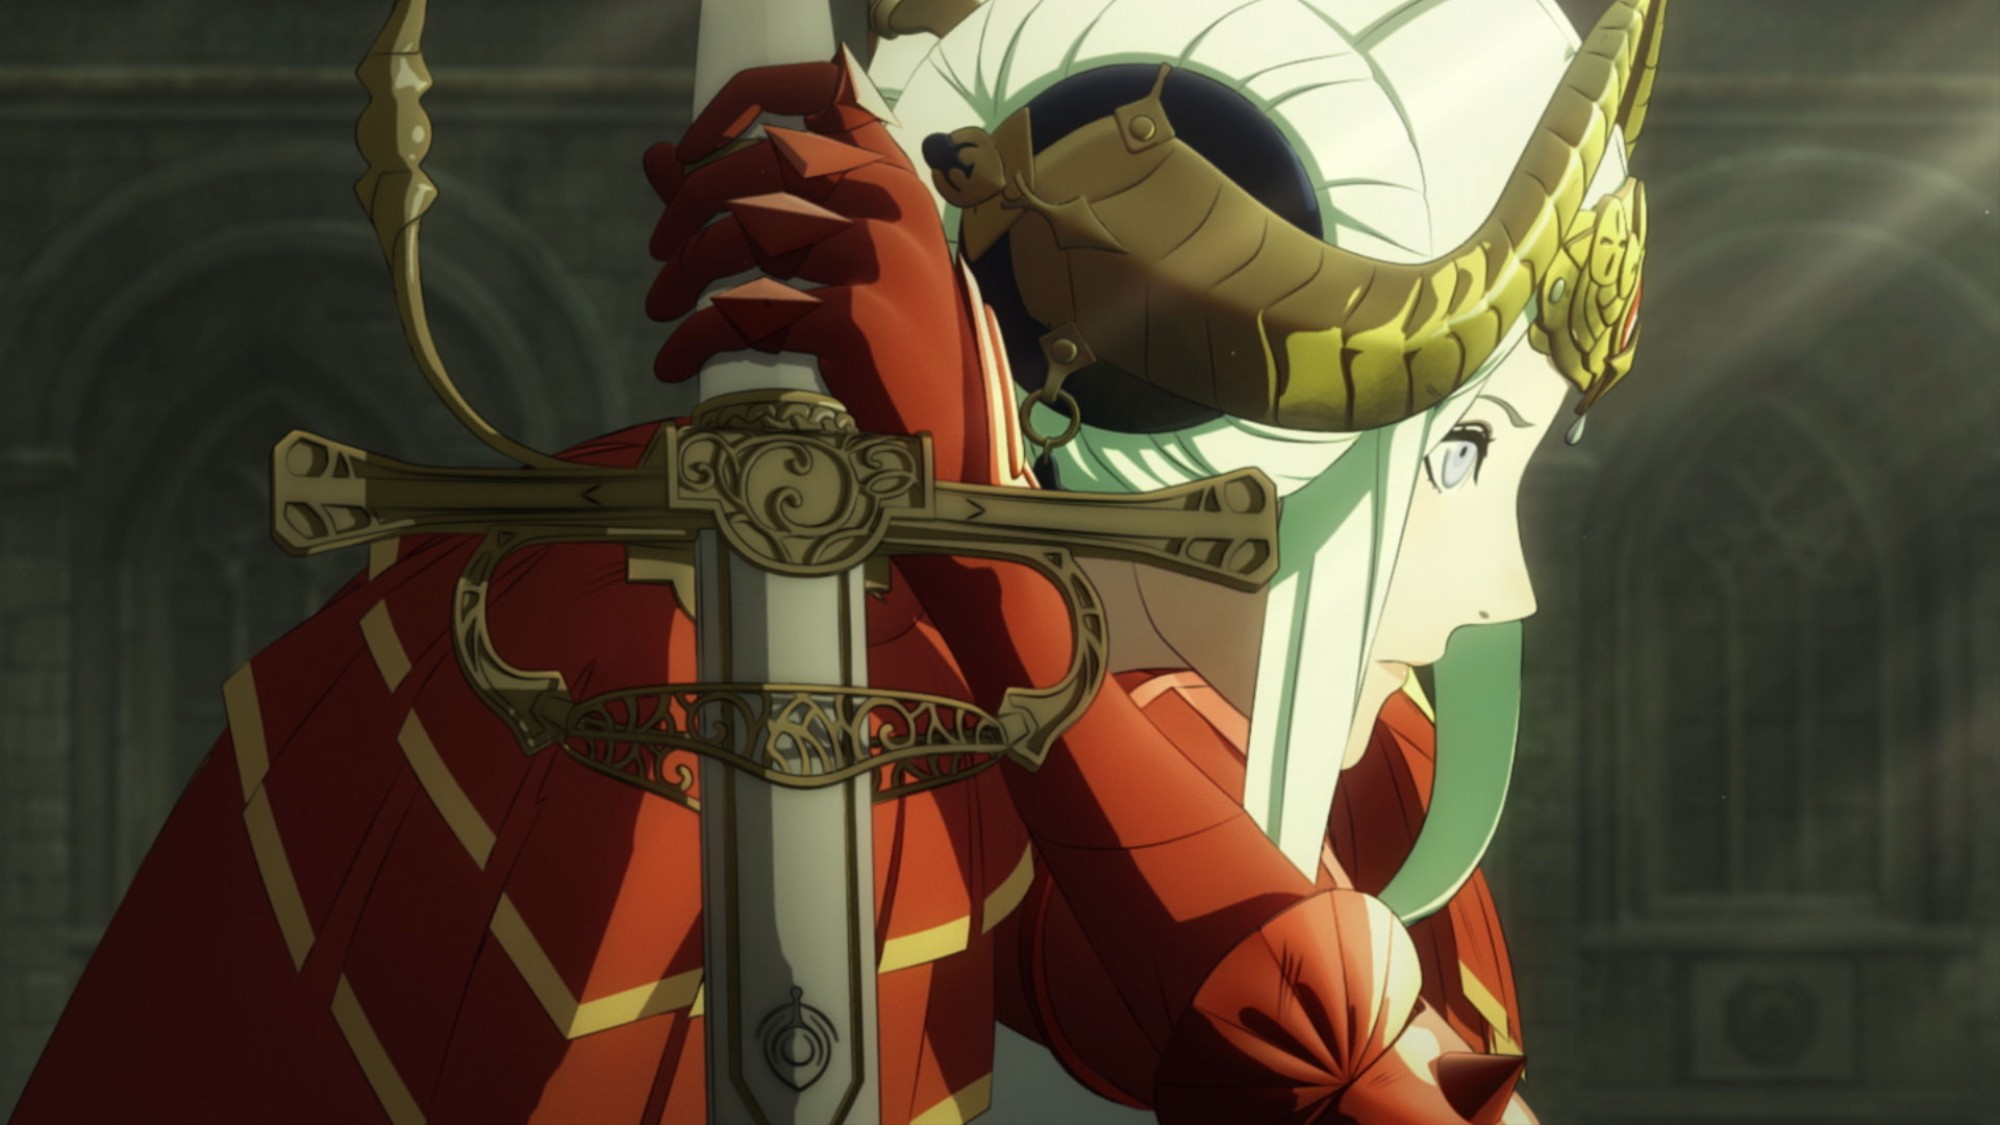 Fire Emblem: Three Houses' Doubles Down on Relationships